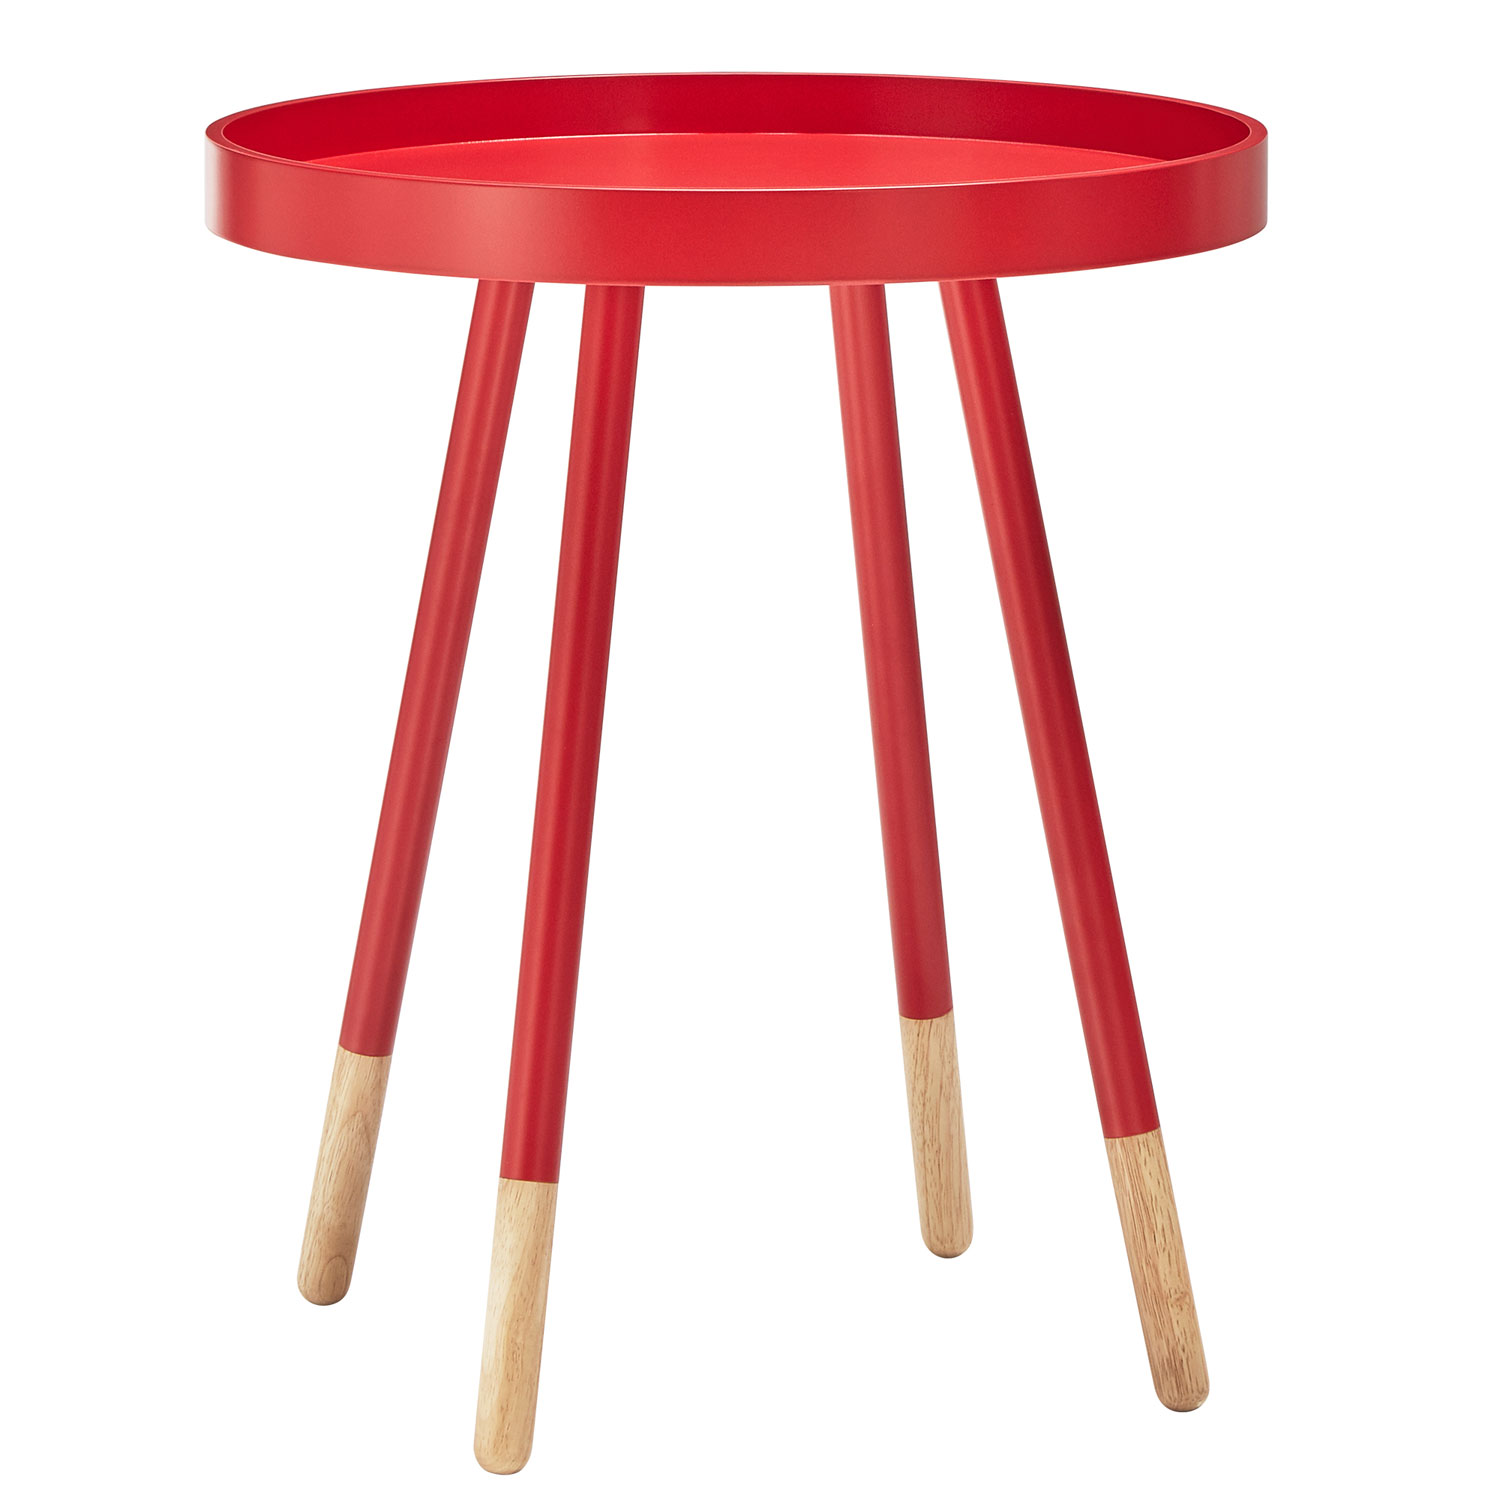 homehills joni red mid century tray top accent table hover zoom counter height dining set round barn ikea storage shelves with bins outside chair covers wicker and chairs small